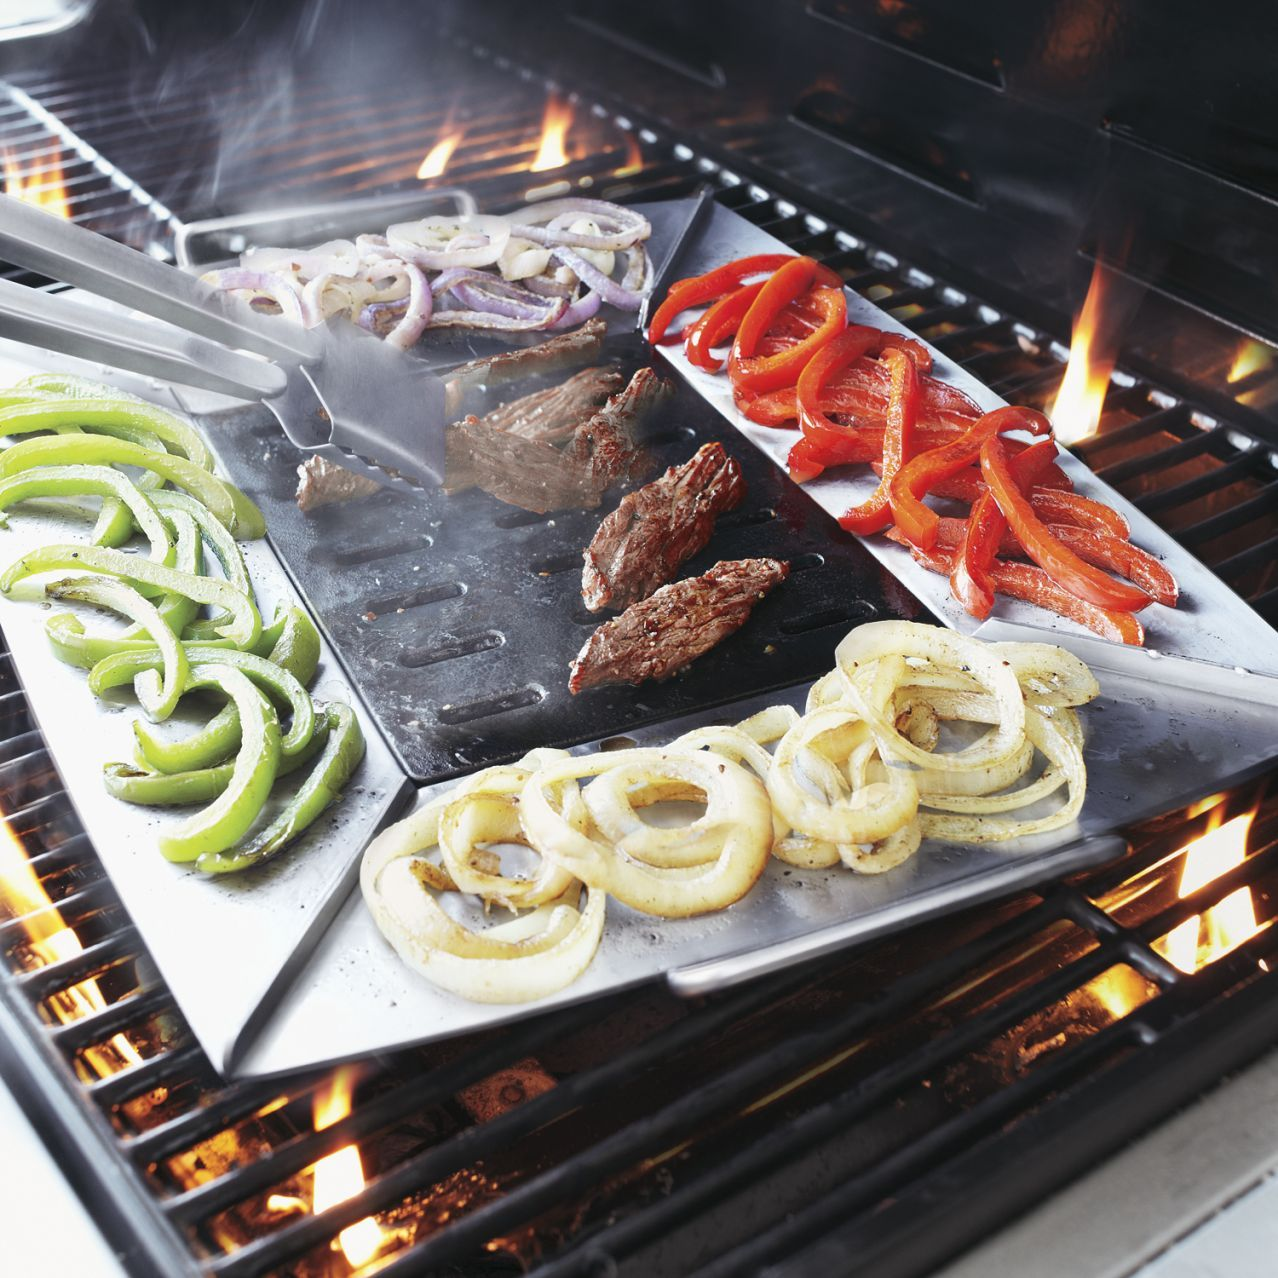 Sur La Table® Grill And Sear Plancha. Now Here Is An Awesome Fatheru0027s Day  Gift:) Mmmm Grilled Fajitas